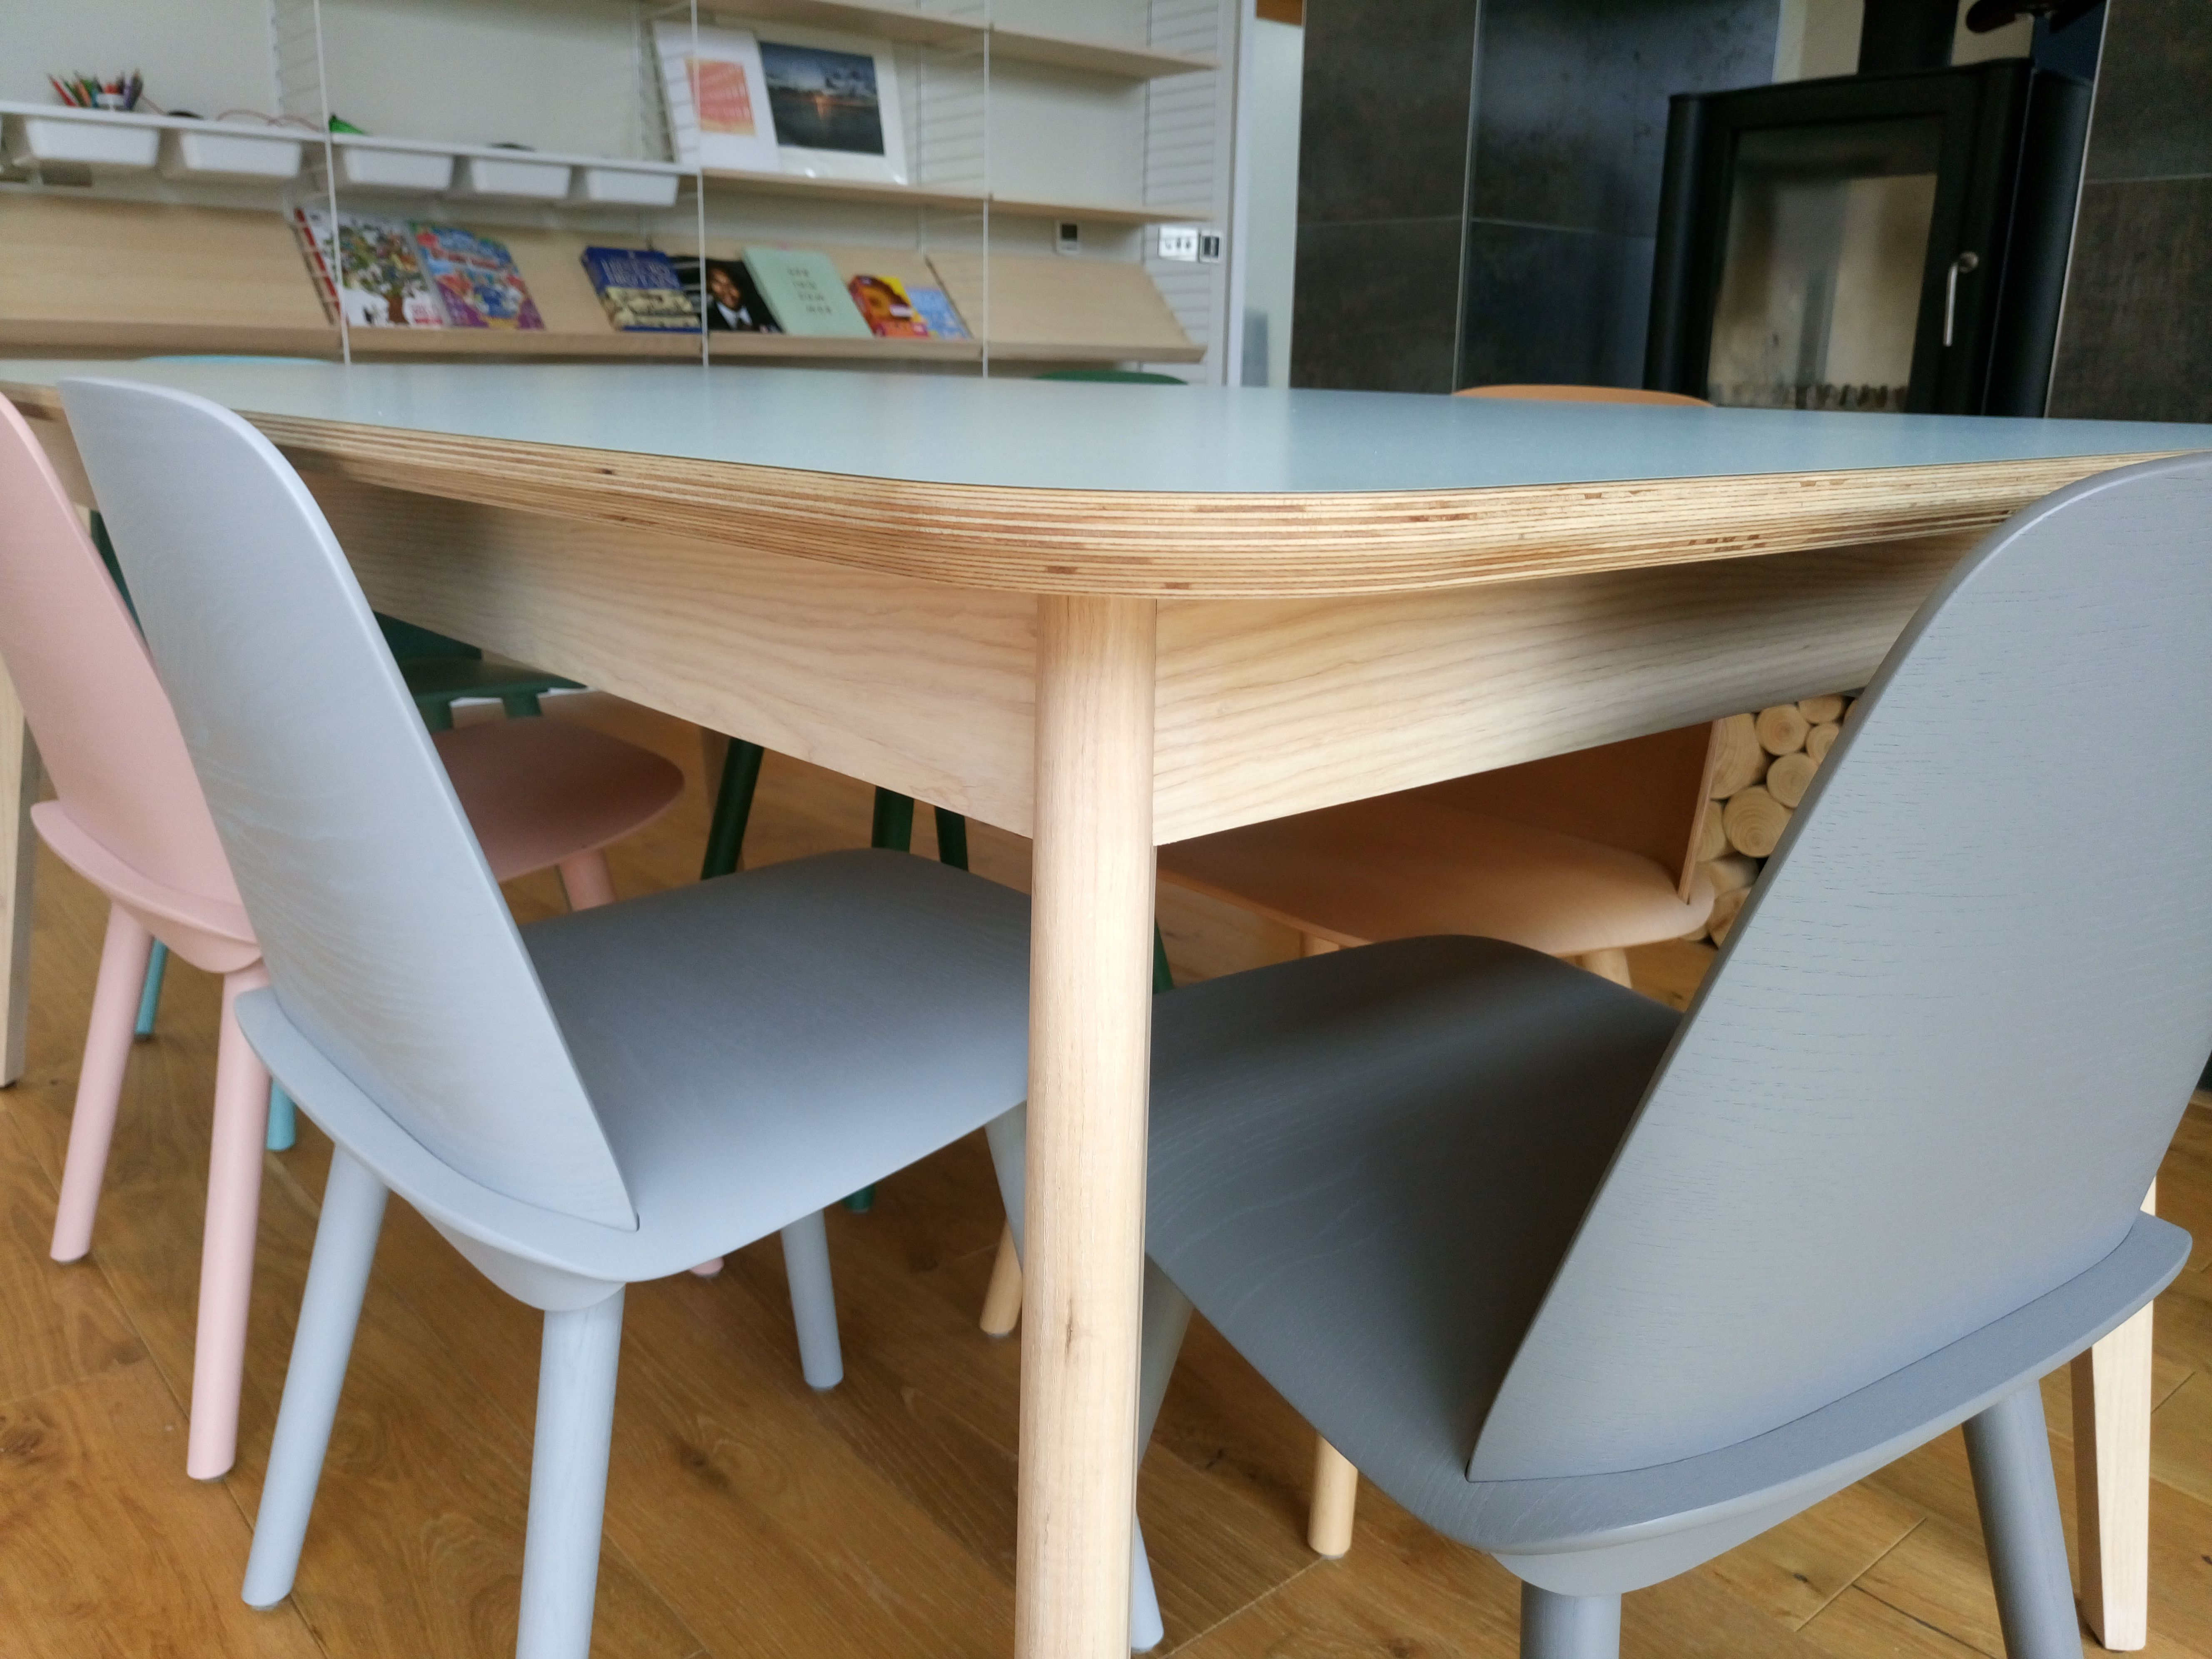 Birch Plywood Table Top With A Laminated Finish Ash Frame Legs